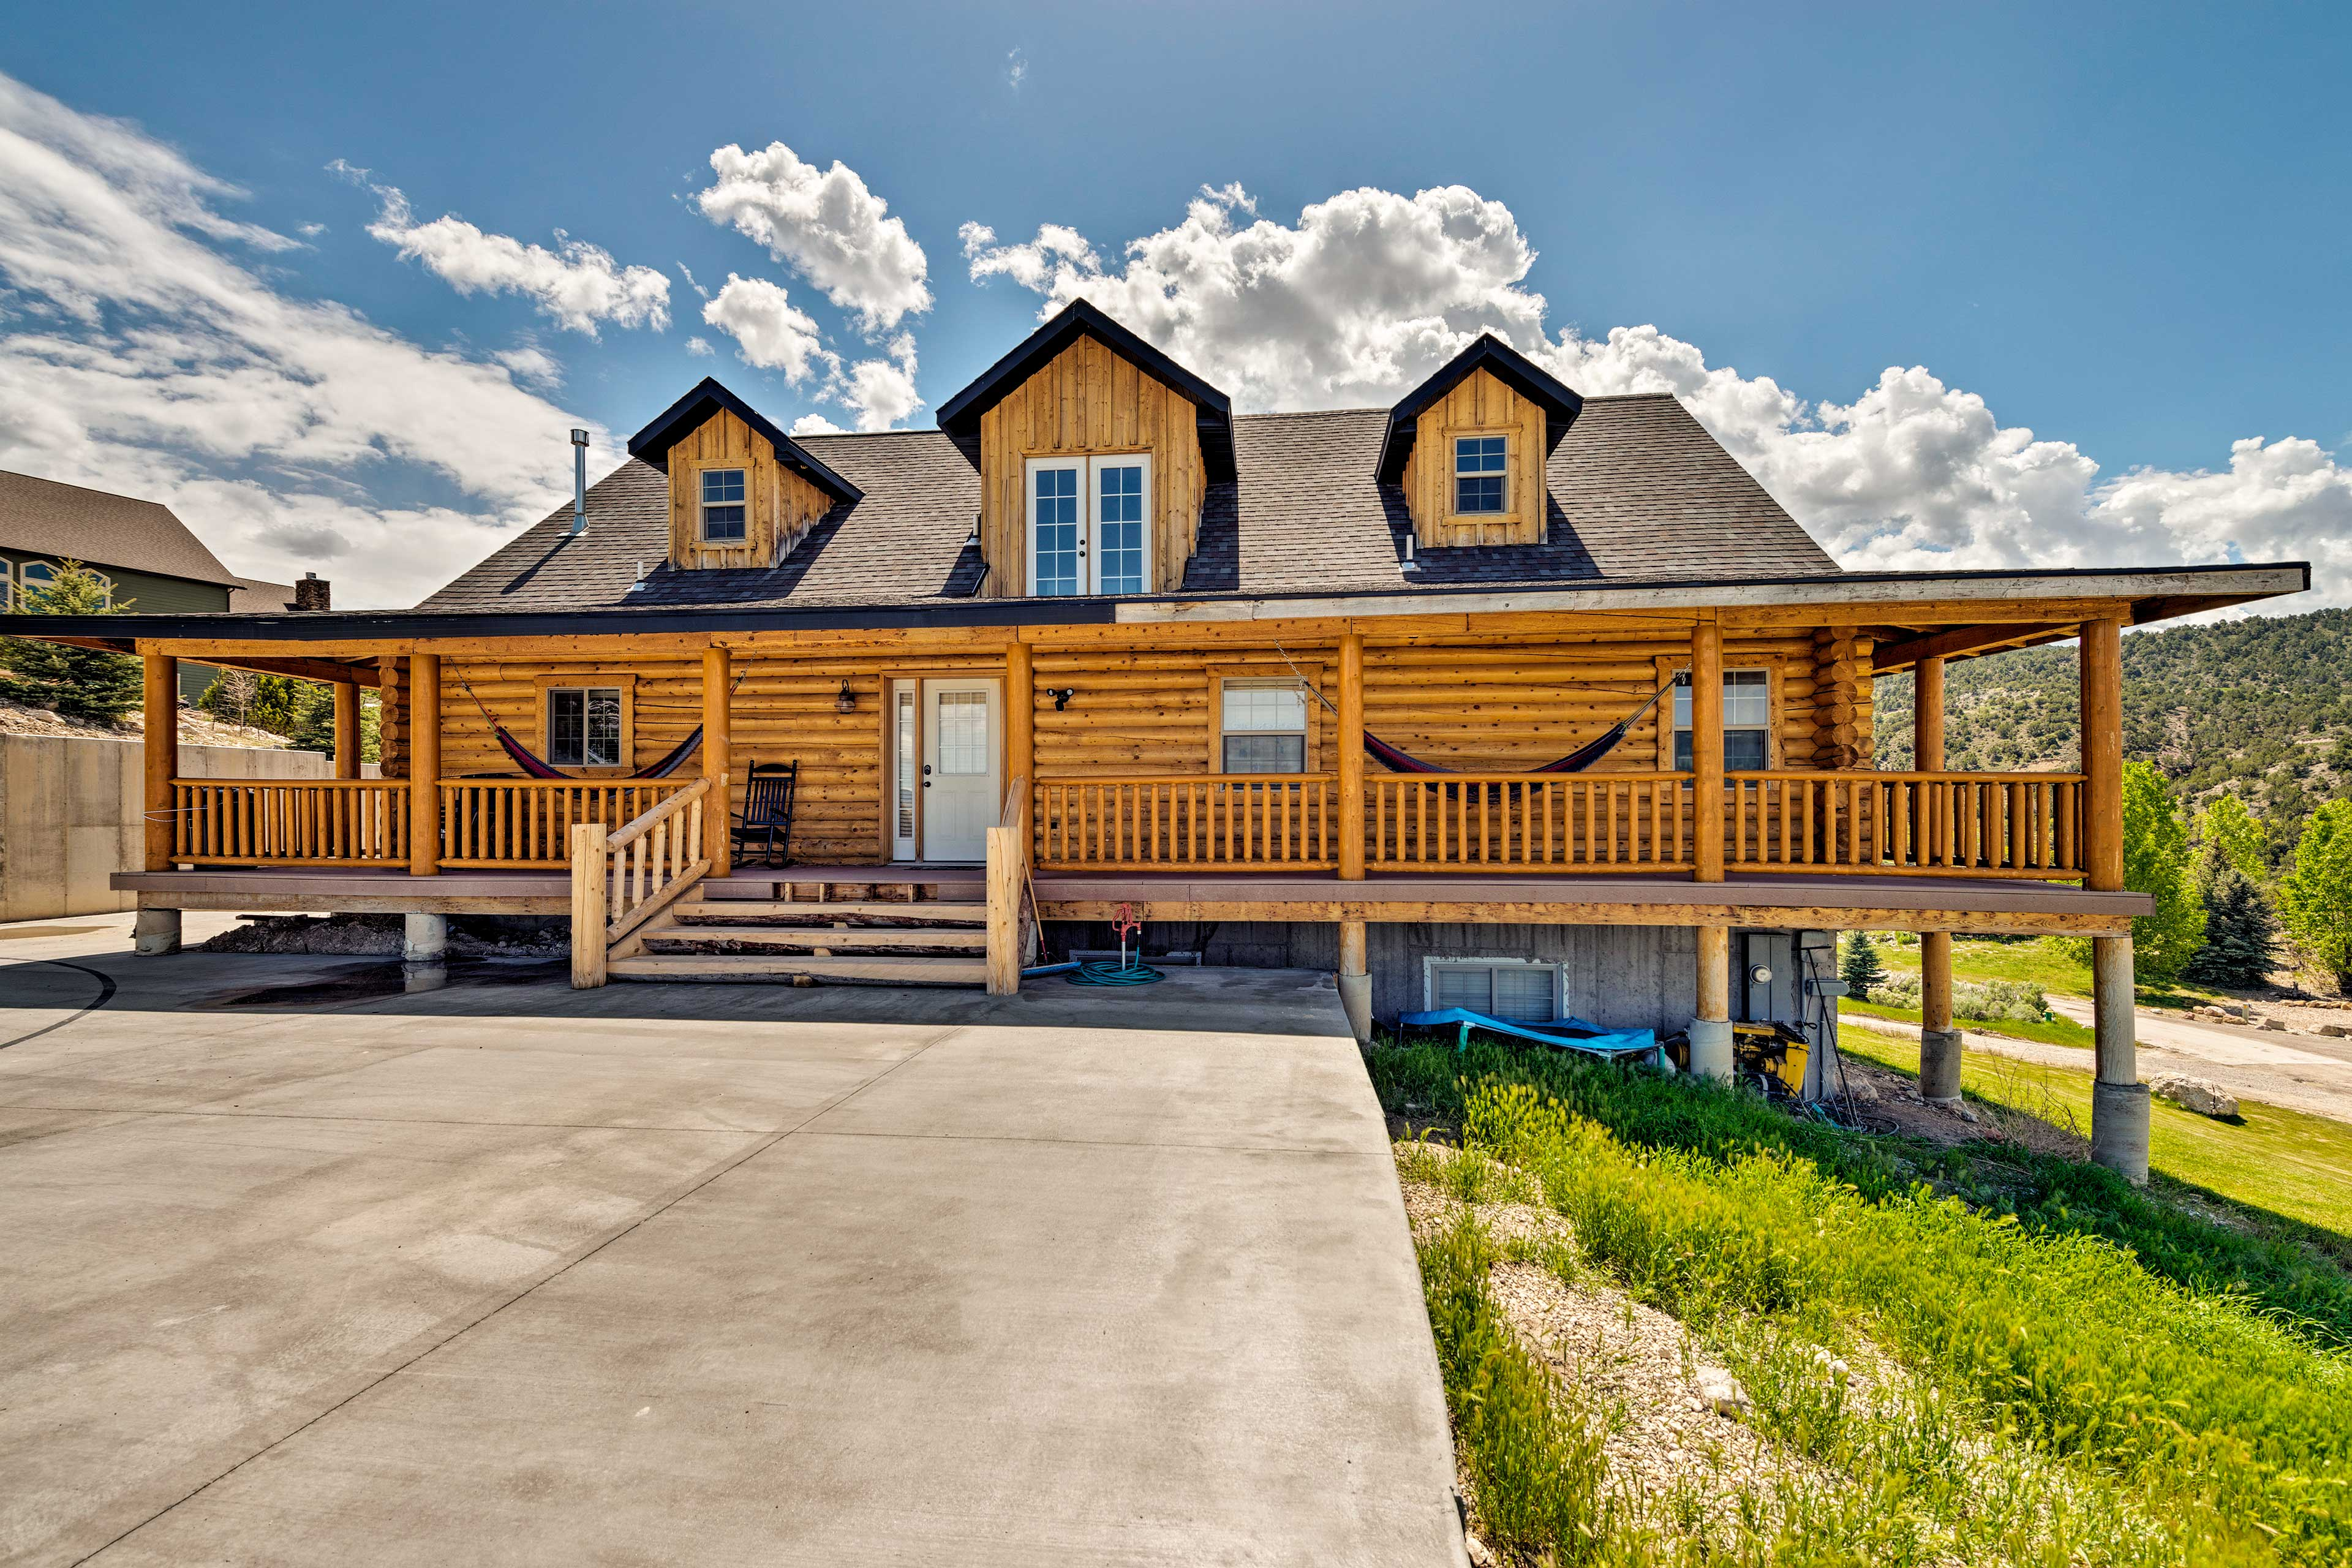 An ideal family getaway awaits at 'Englestead Cabin' in Sterling.